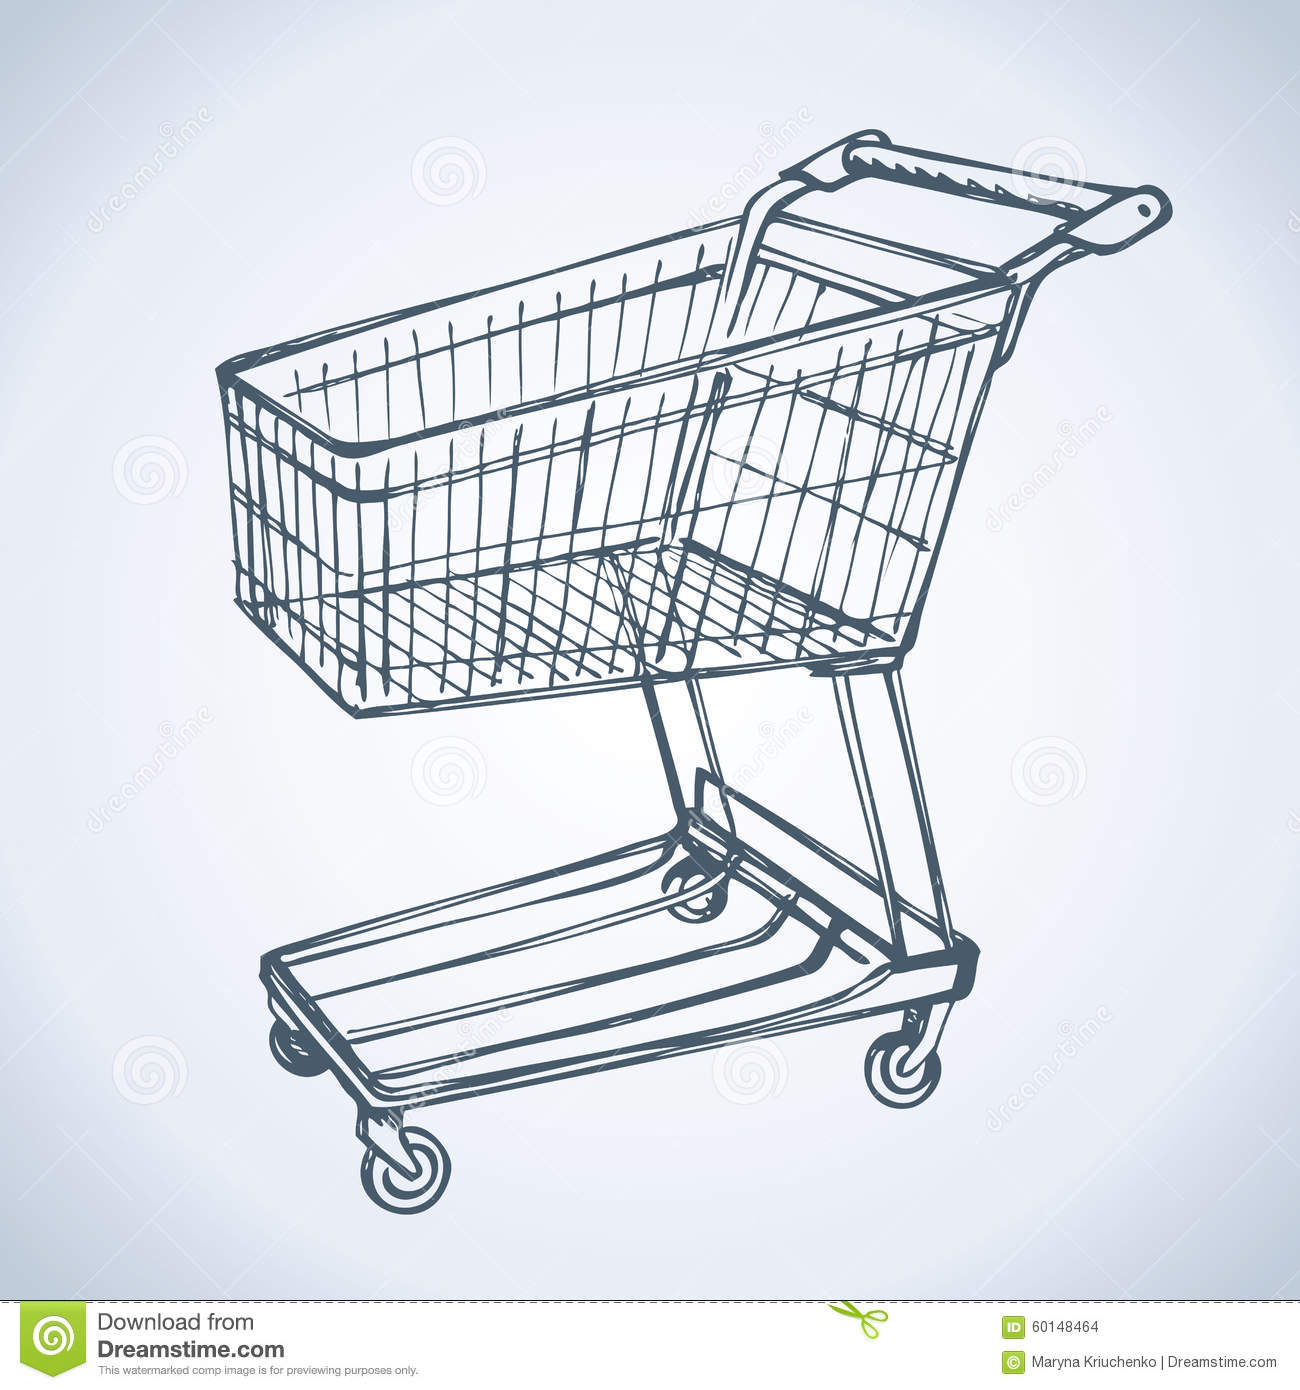 It is an image of Simplicity Shopping Cart Drawing